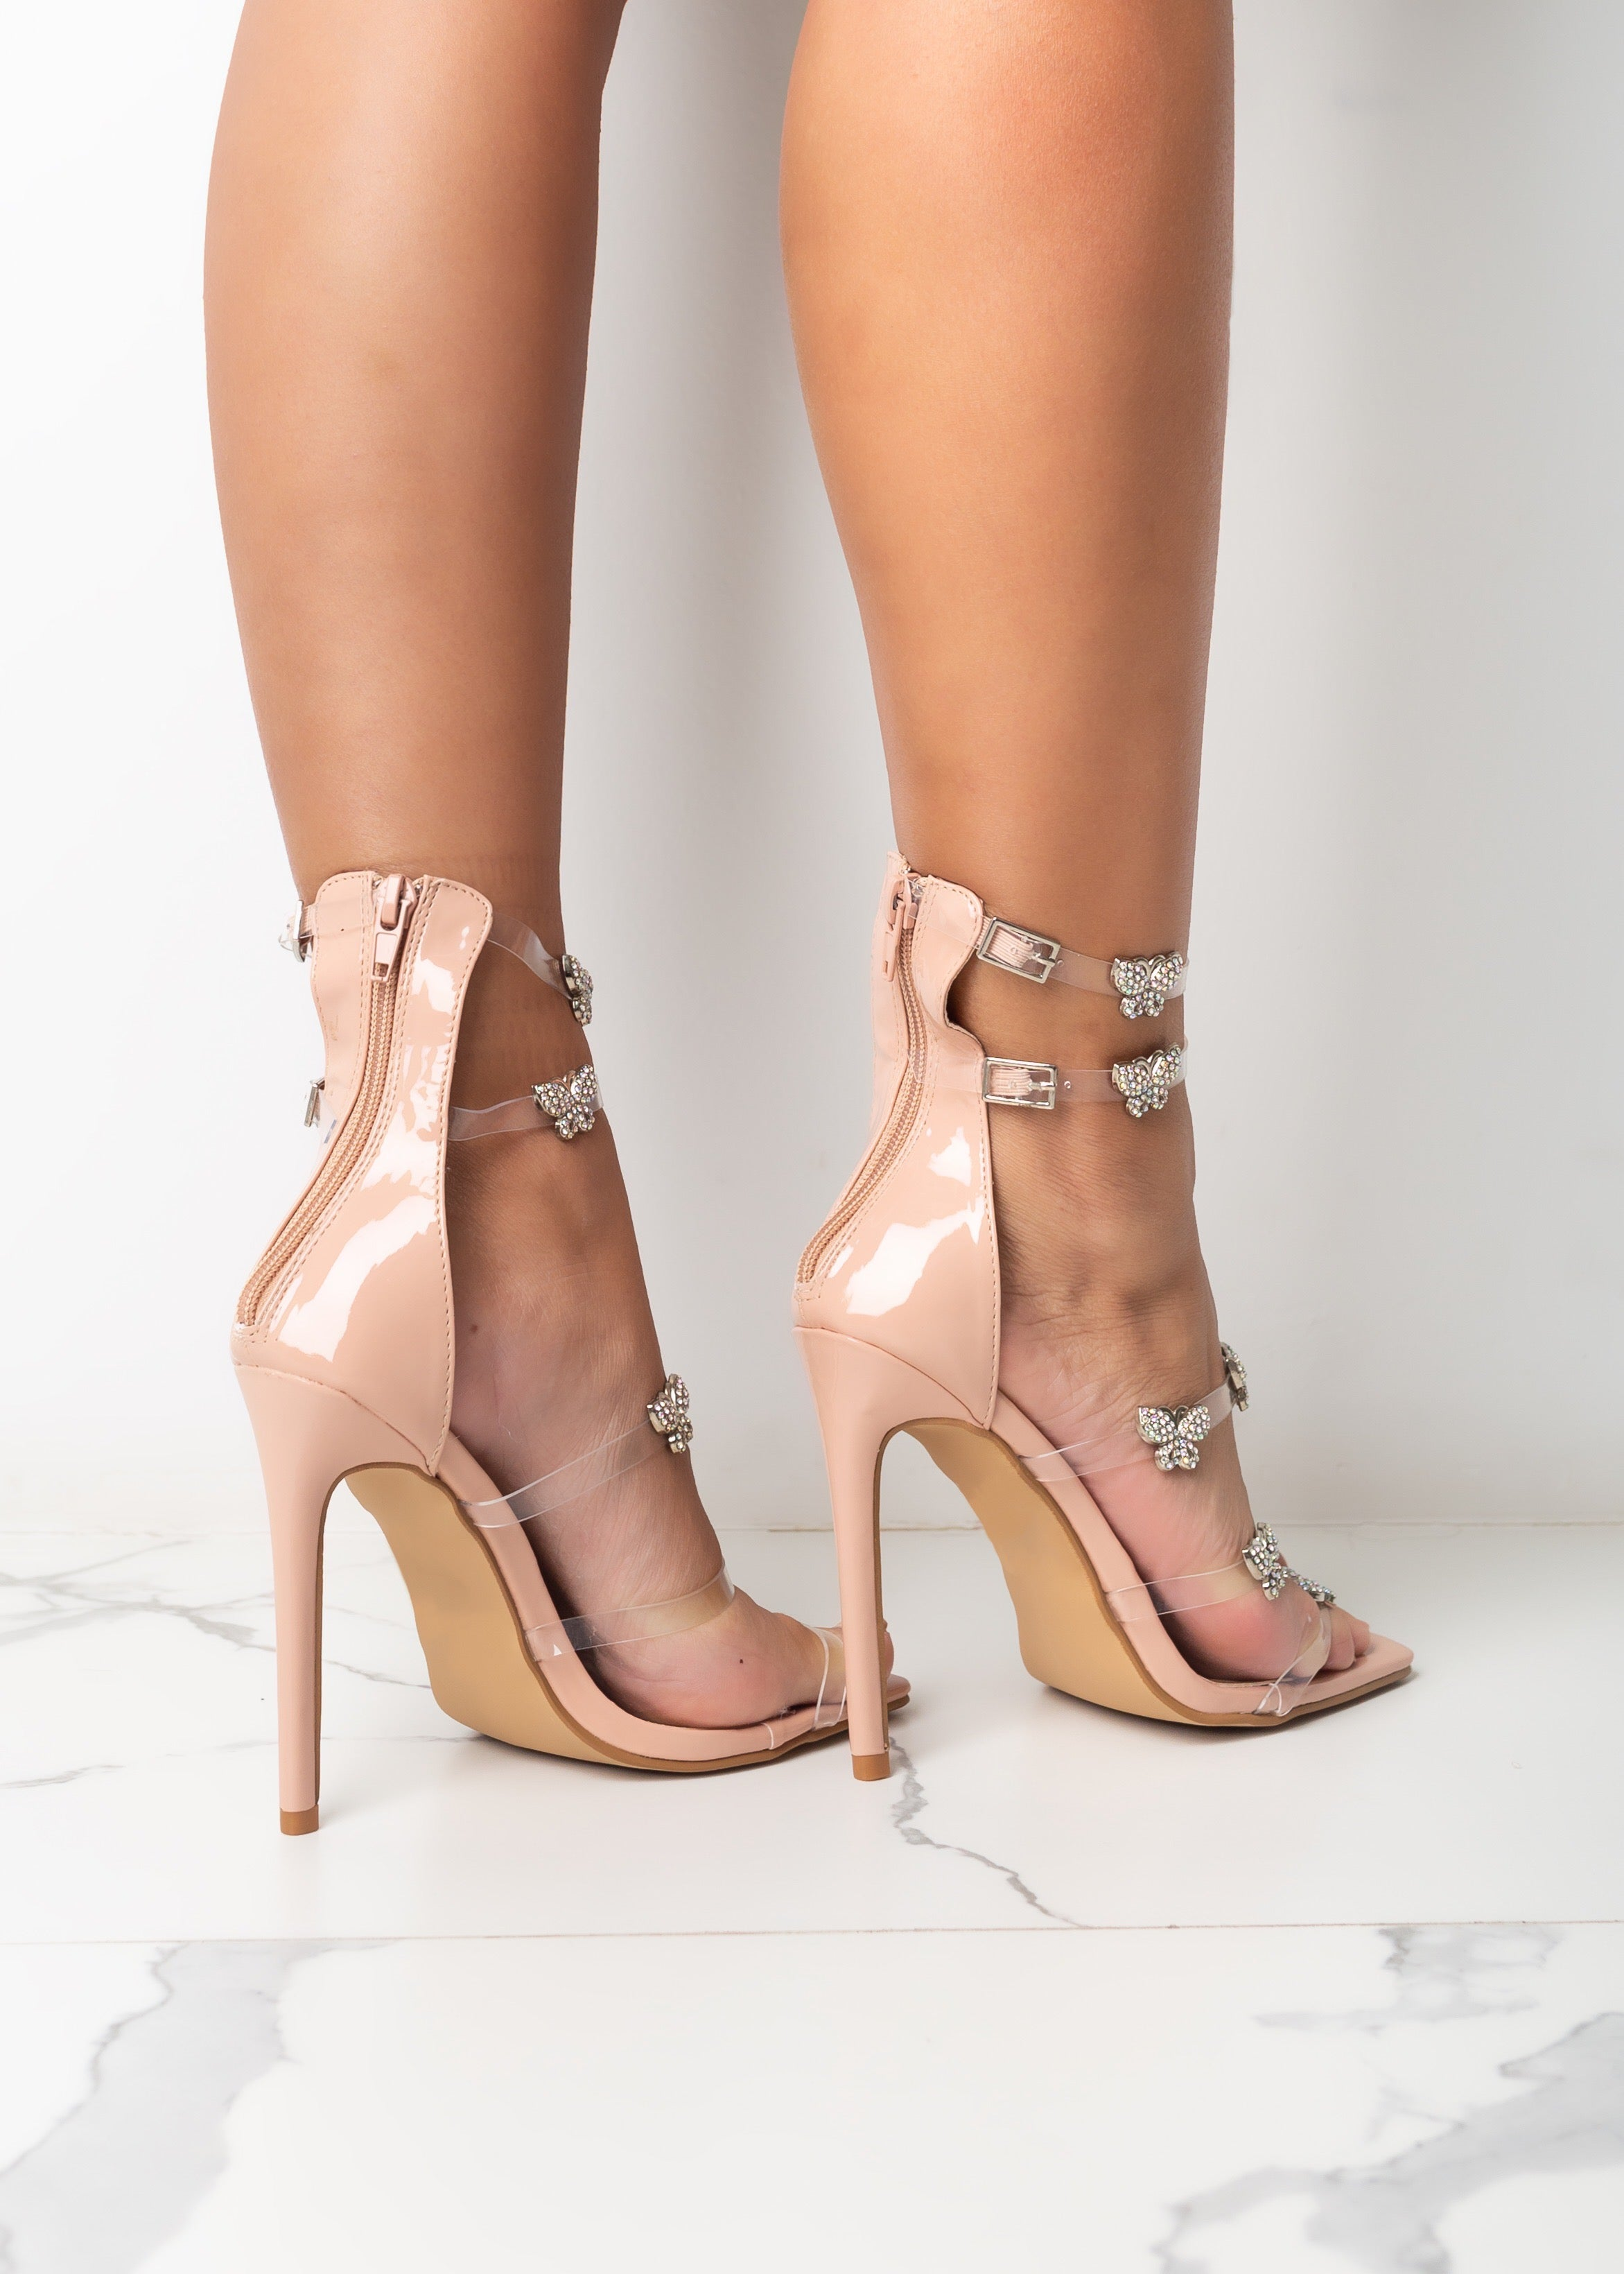 Clear The Air Nude Heels